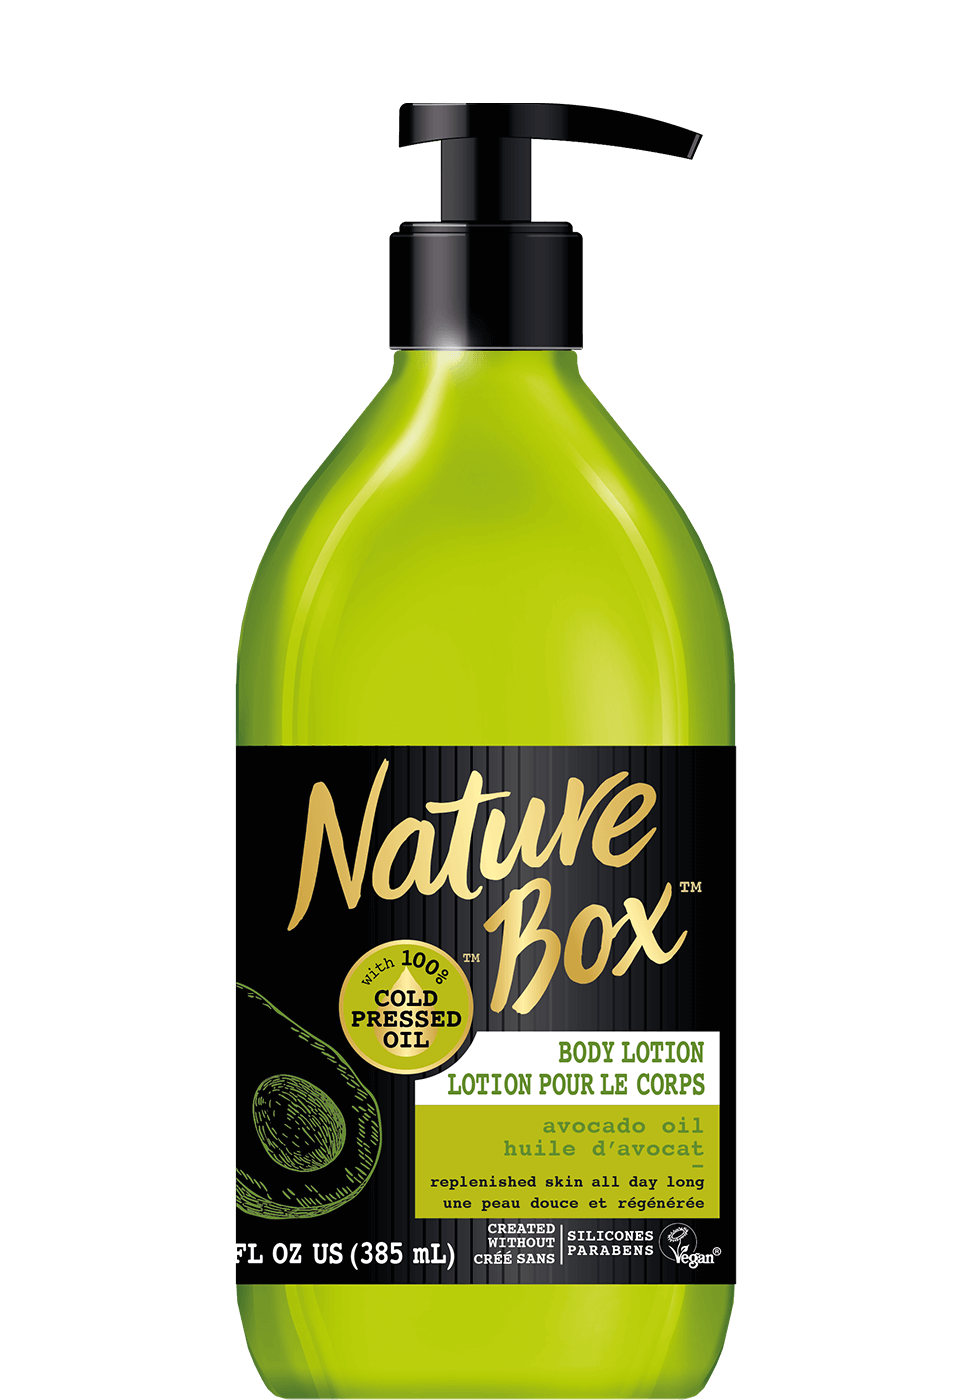 naturebox_us_avocado_body_lotion_970x1400